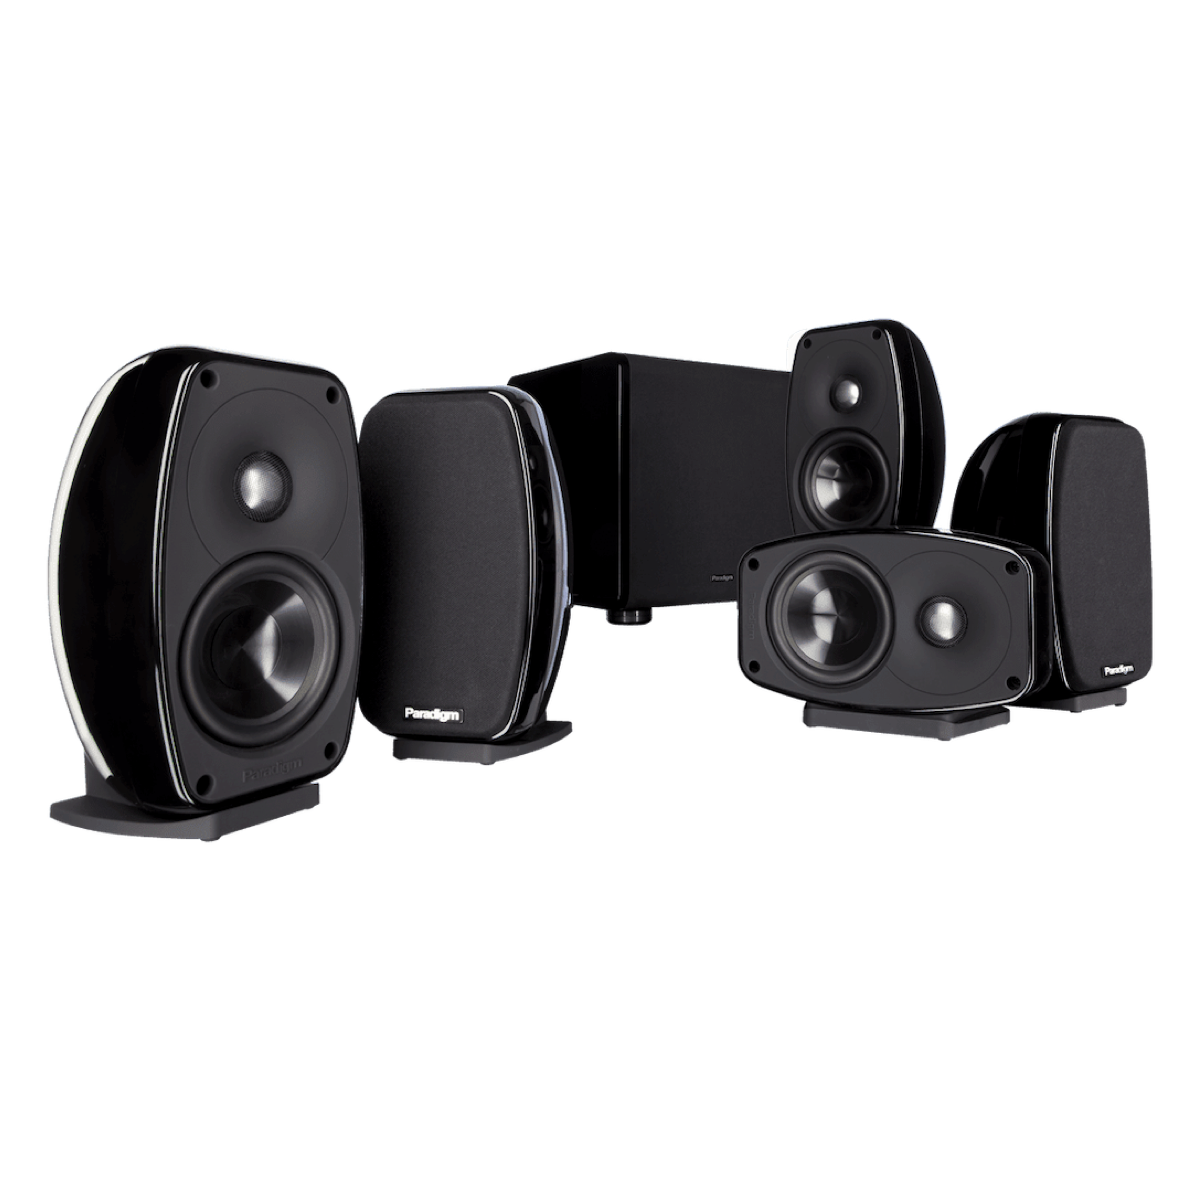 Paradigm Cinema 100CT - 5.1 Channel Speaker System - AVStore.in